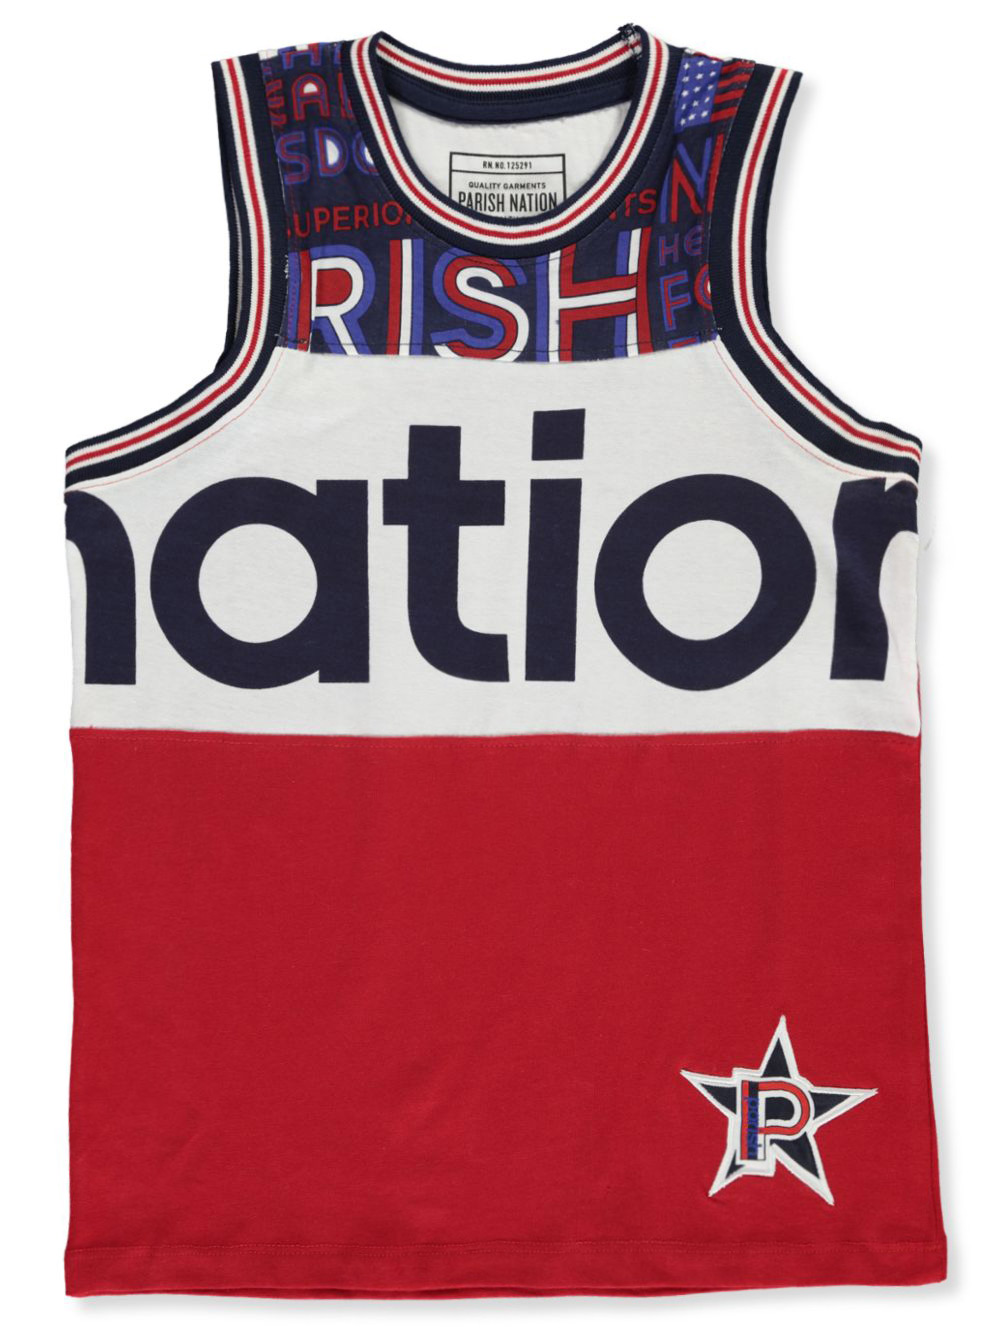 Parish Nation Tank